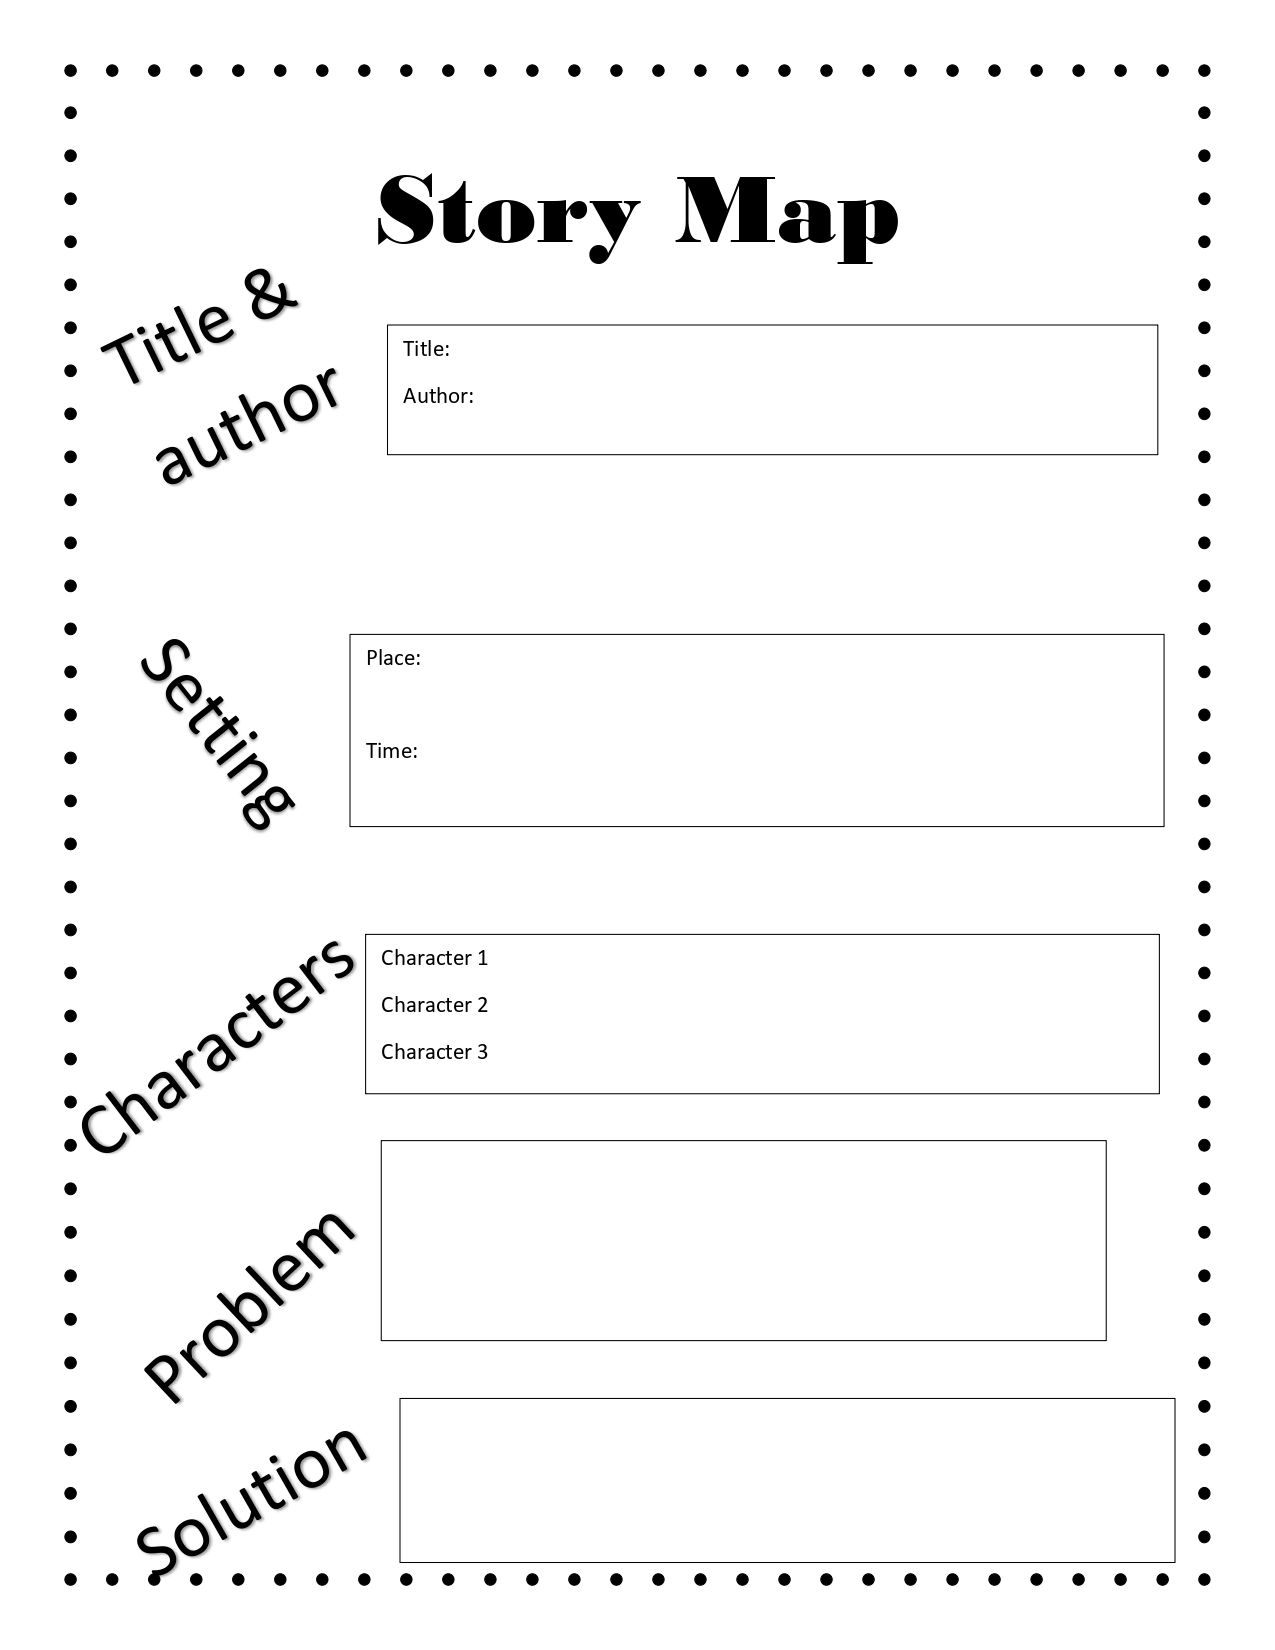 Role Map Worksheet   Printable Worksheets and Activities for Teachers [ 1650 x 1275 Pixel ]